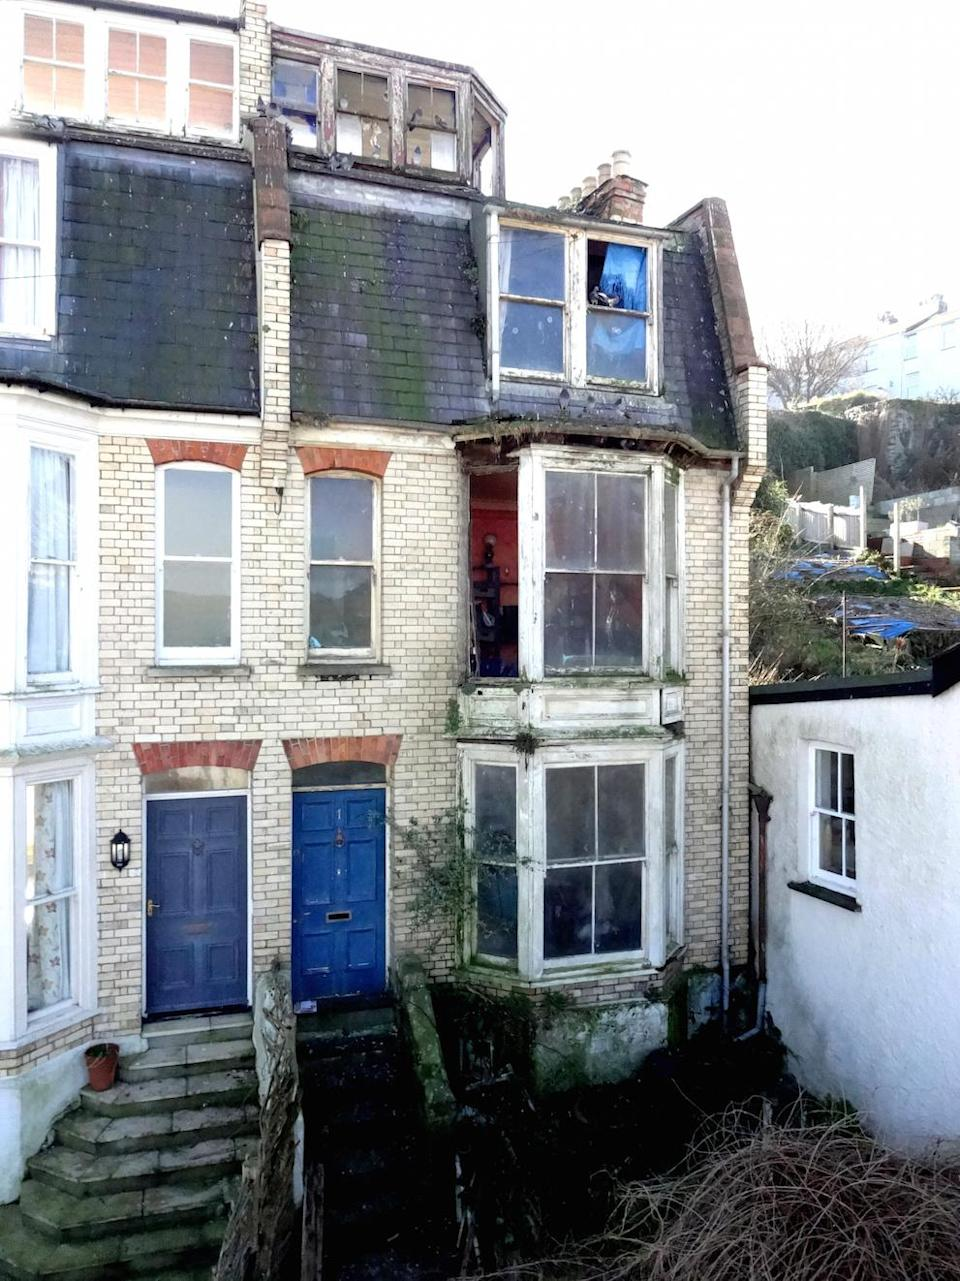 The house in Ilfracombe, Devon, is in a serious state of disrepair (Picture: SWNS)